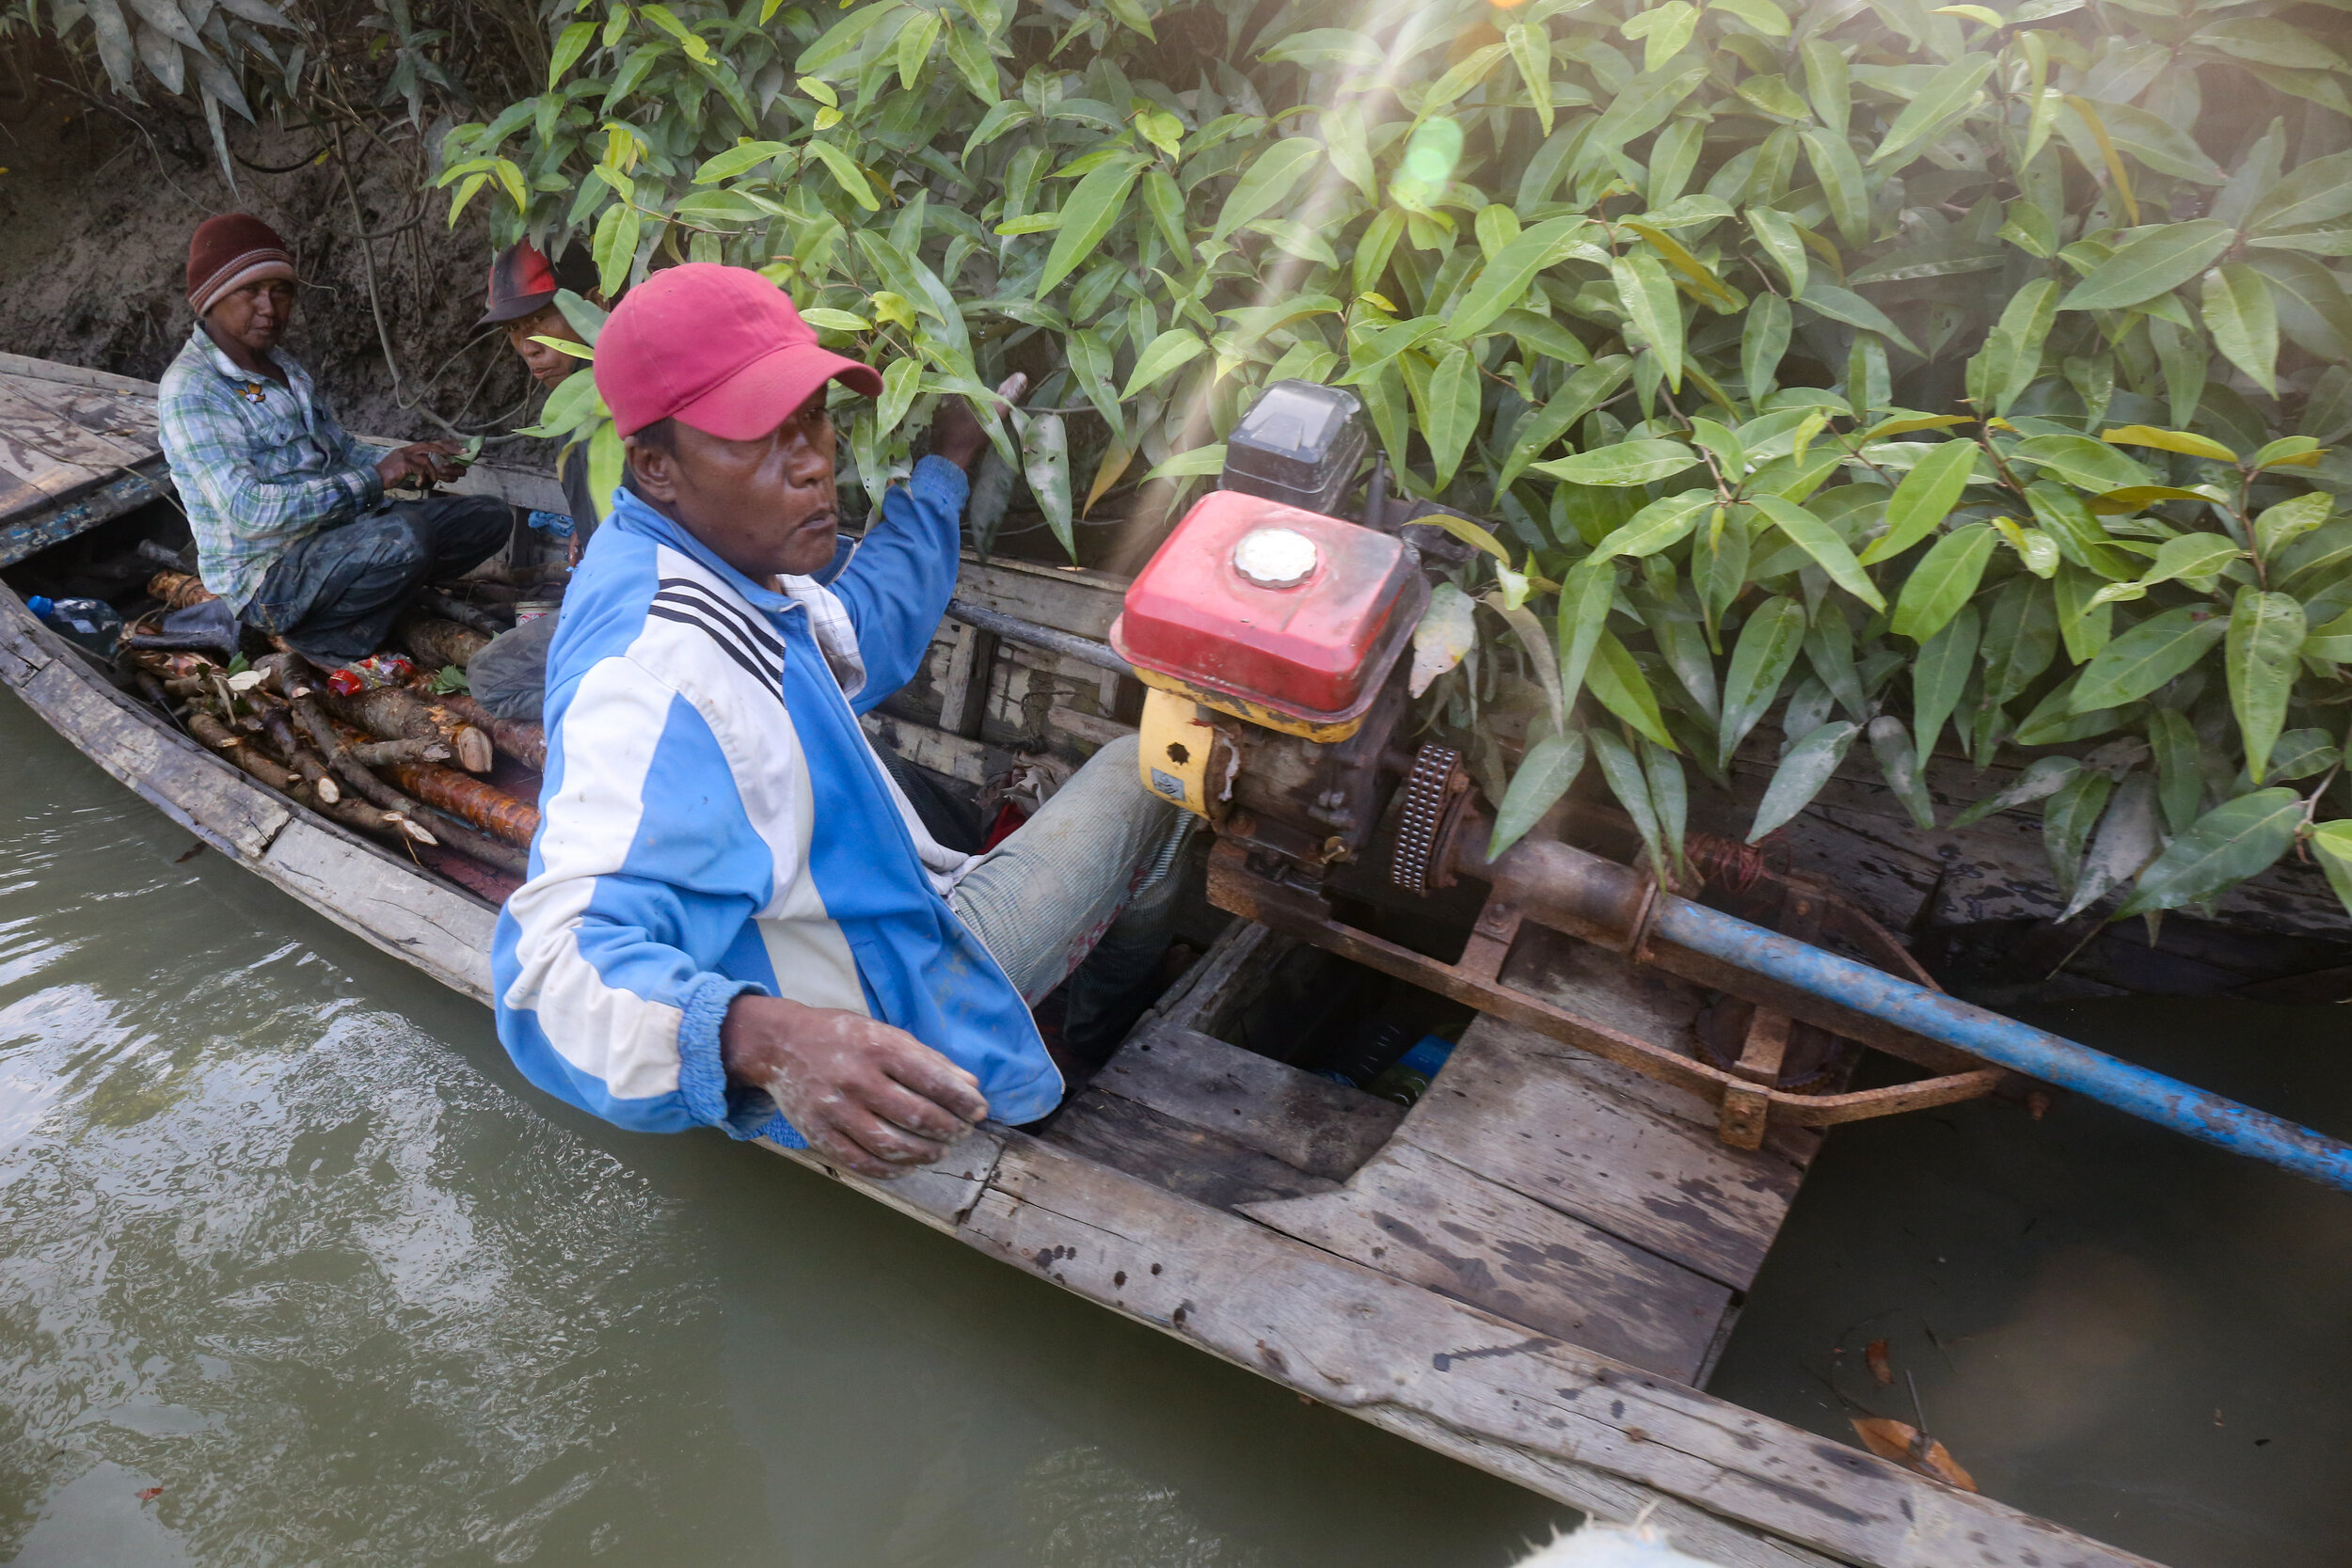 Illegal mangrove harvesters in the Irrawaddy.